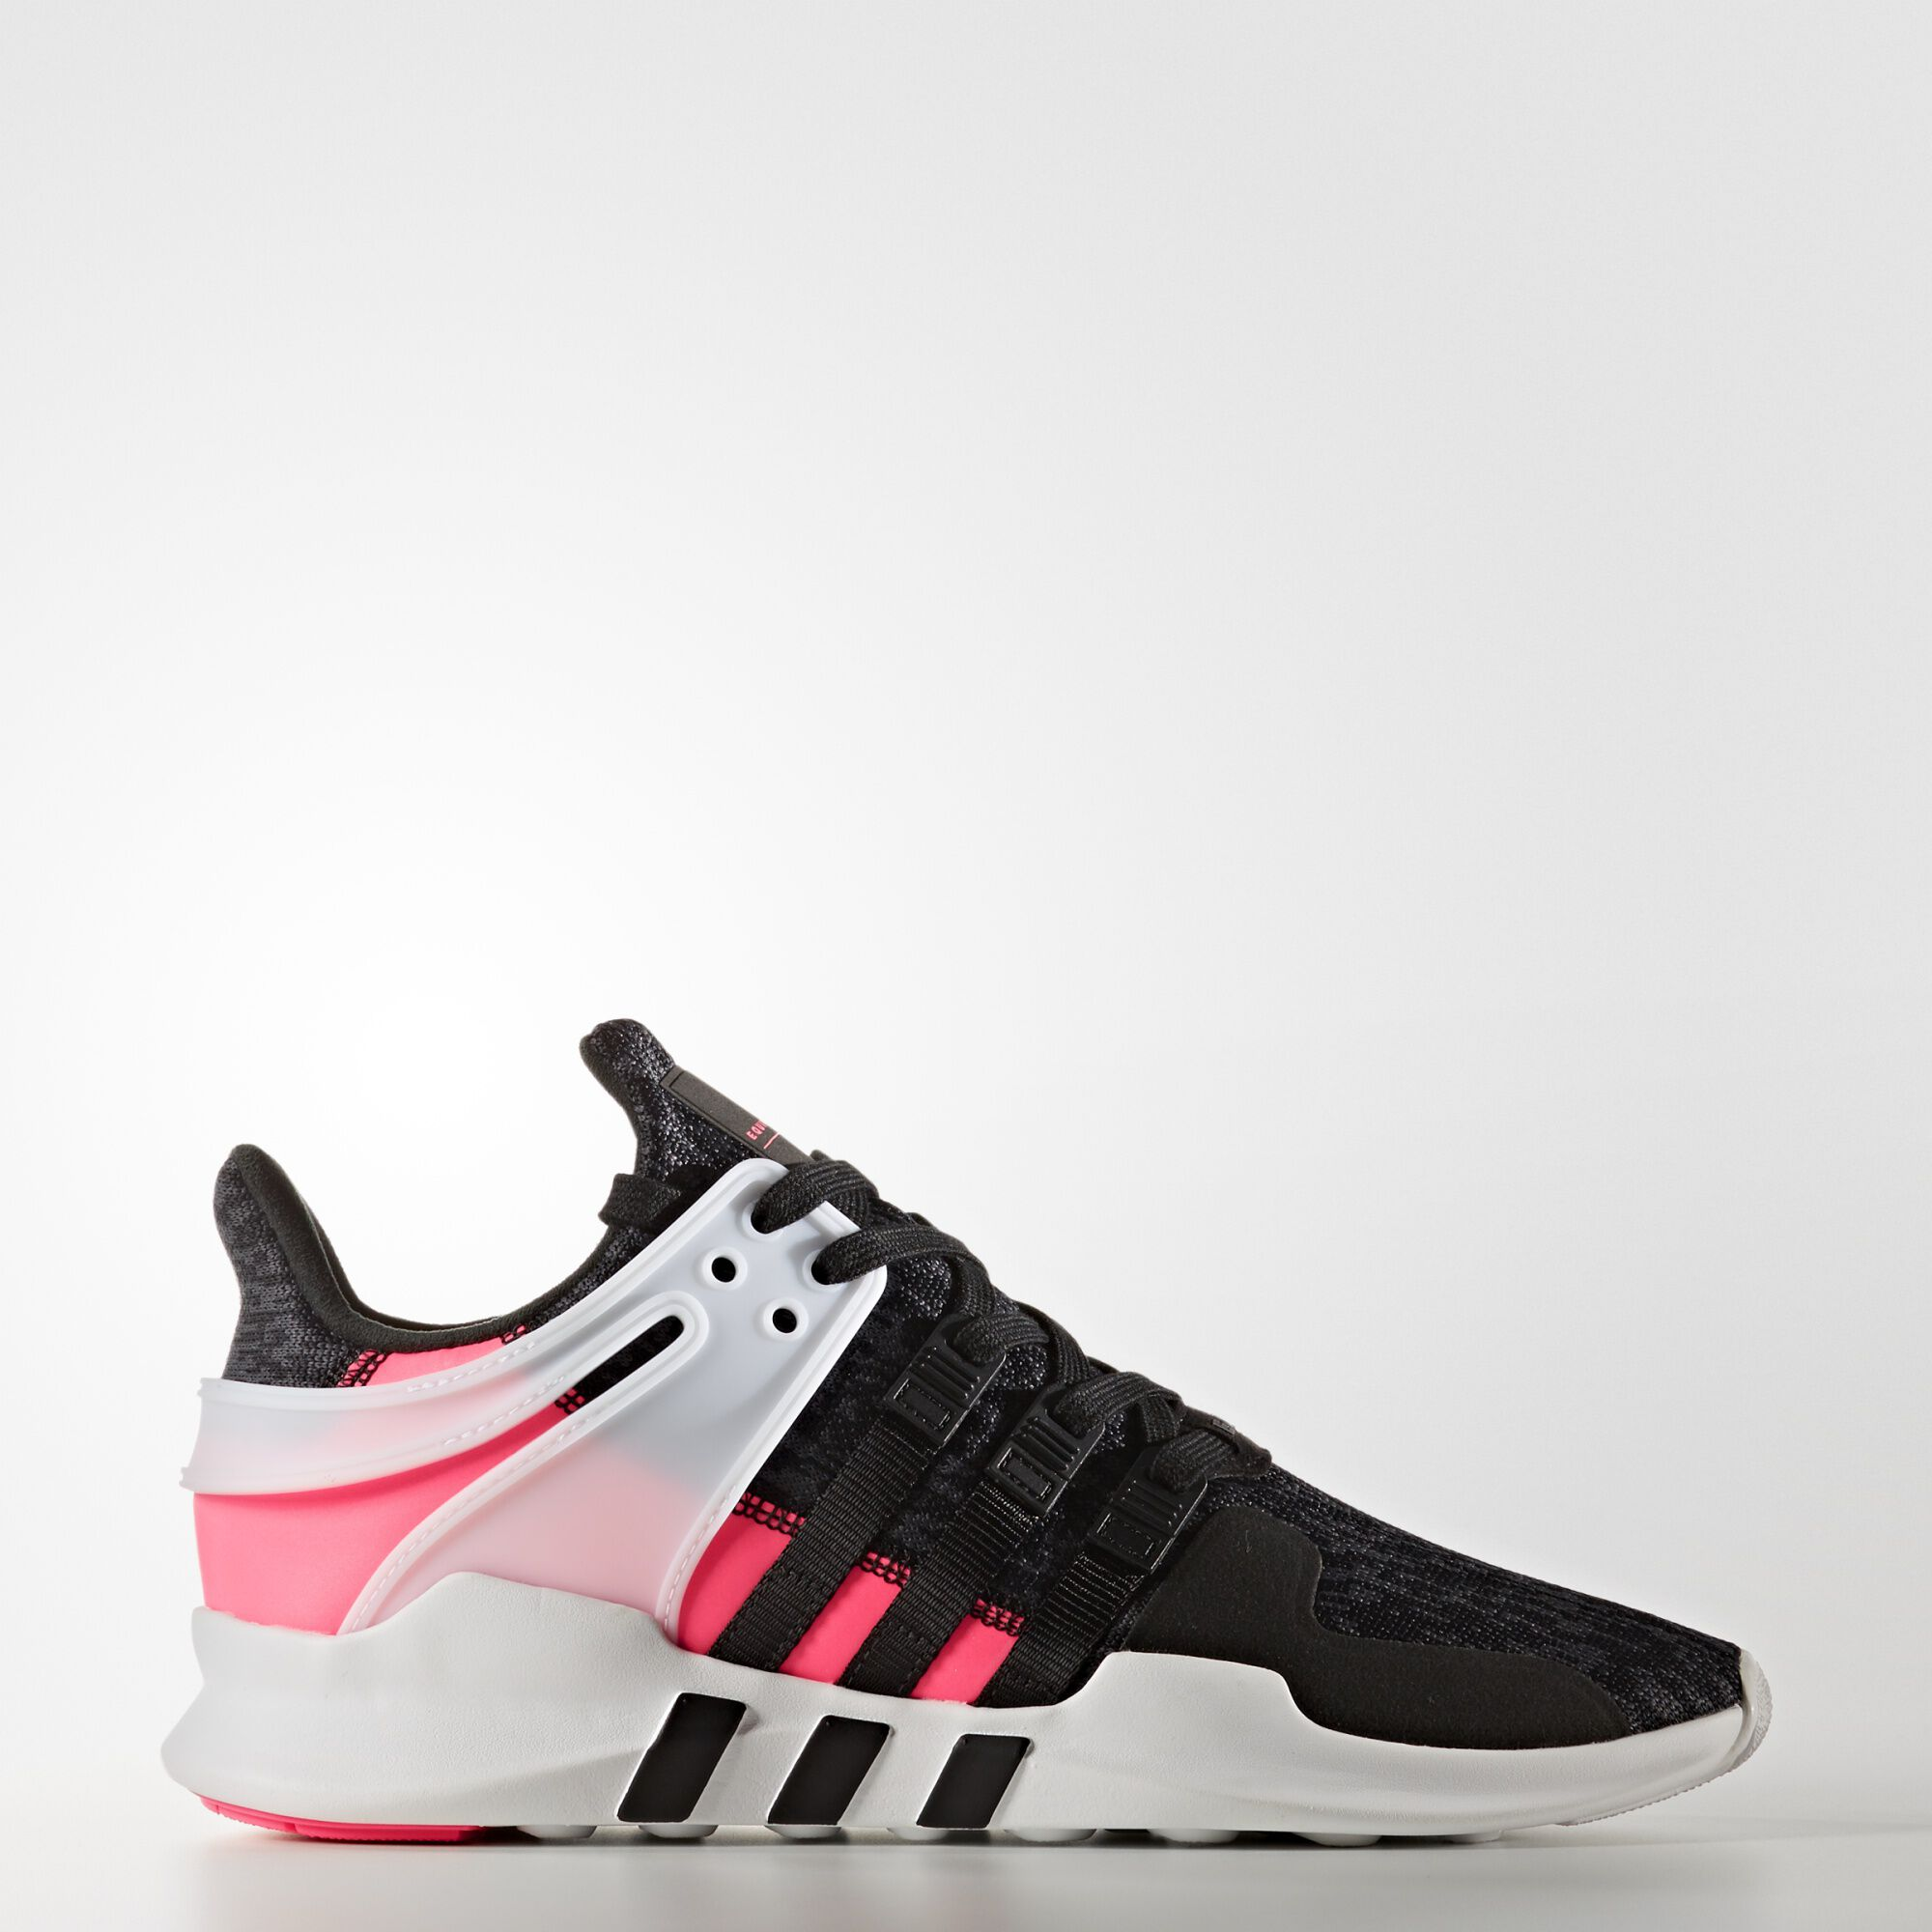 EQT Boost, Cheap Adidas Originals EQT Boost Sale 2017